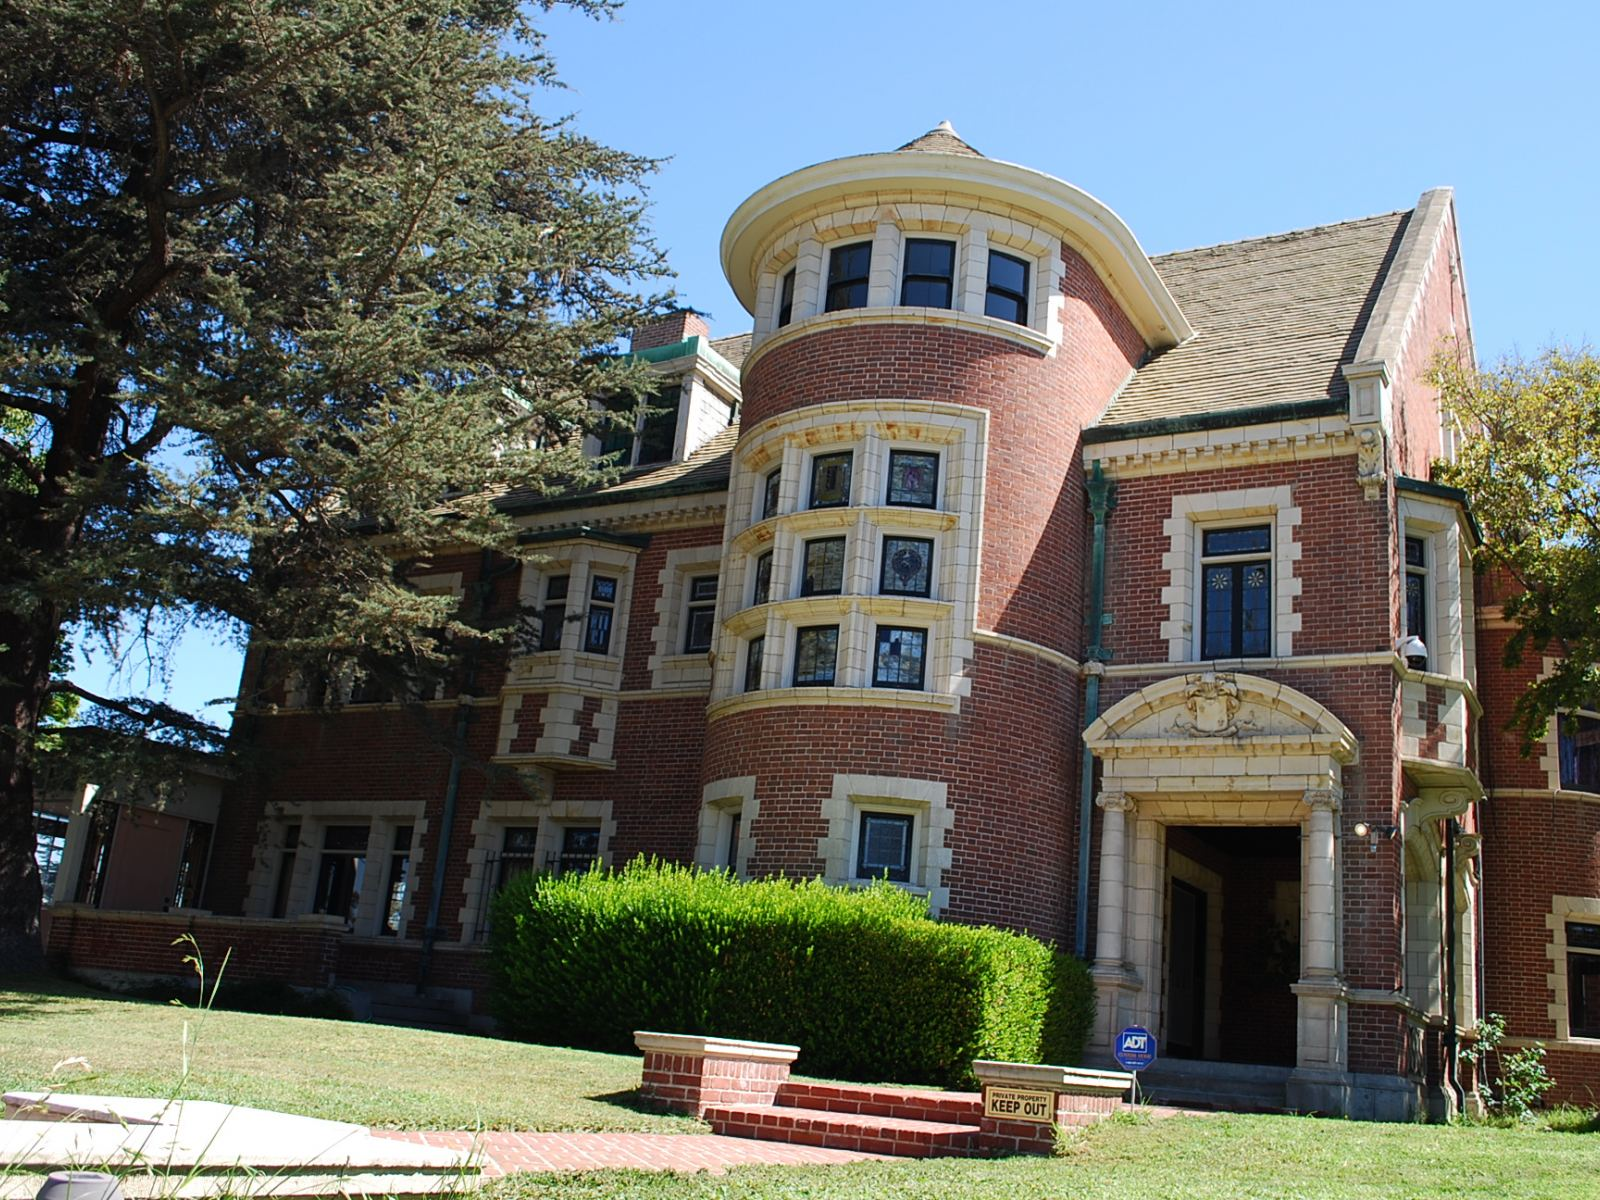 Rosenheim Mansion aka the American Horror Story House | Photo: Dearly Departed Tours